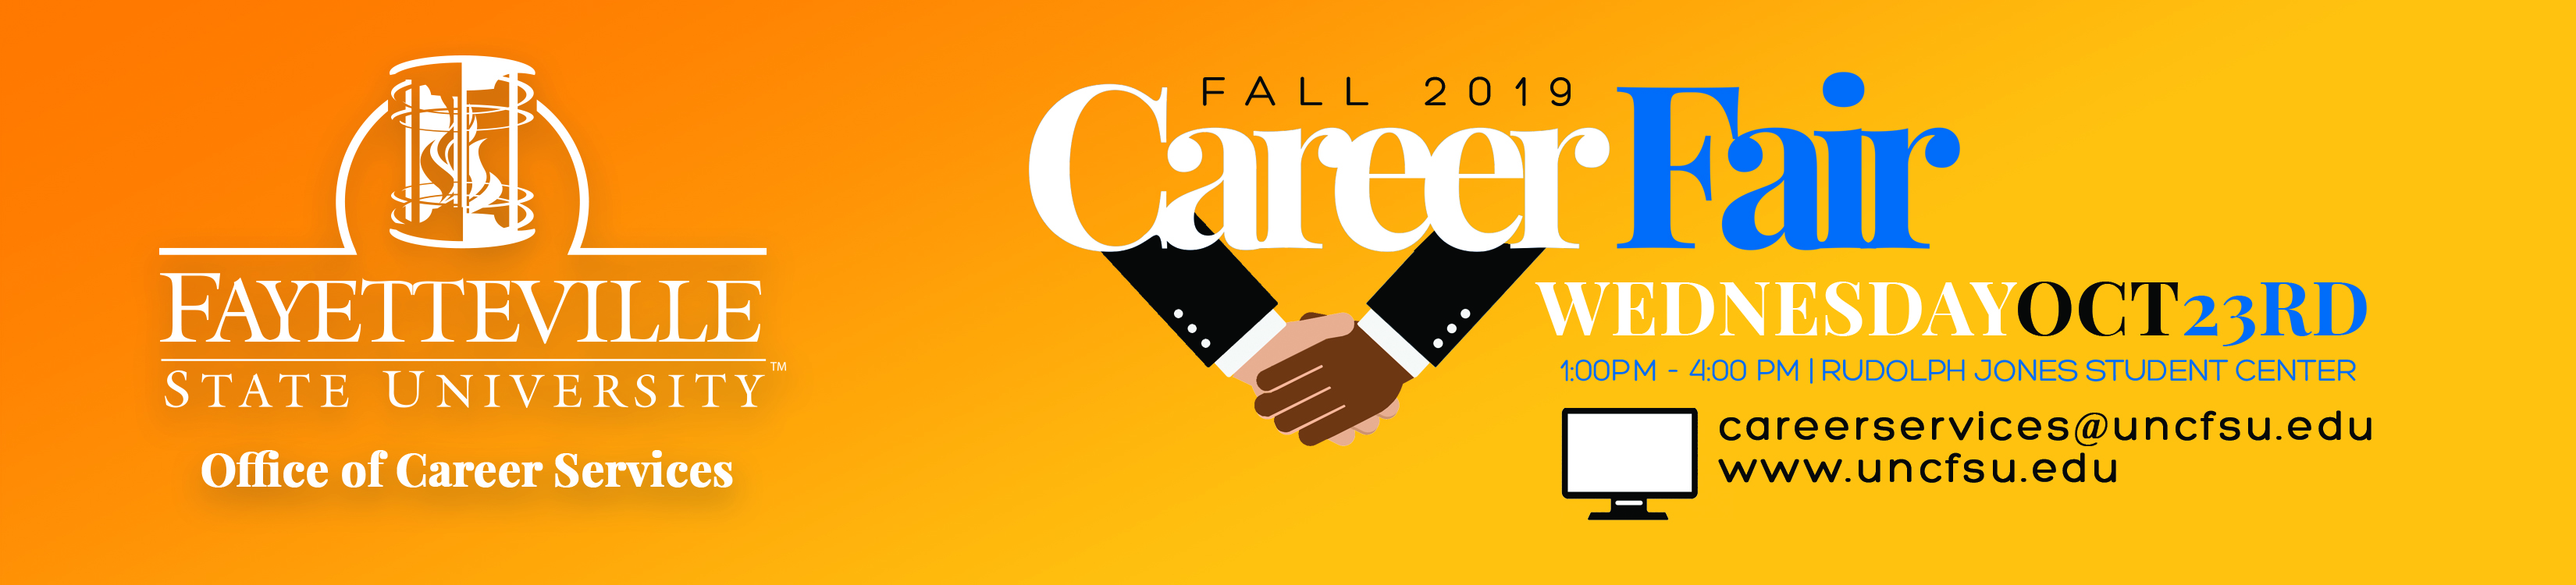 2019 Fall Career Fair Flyer